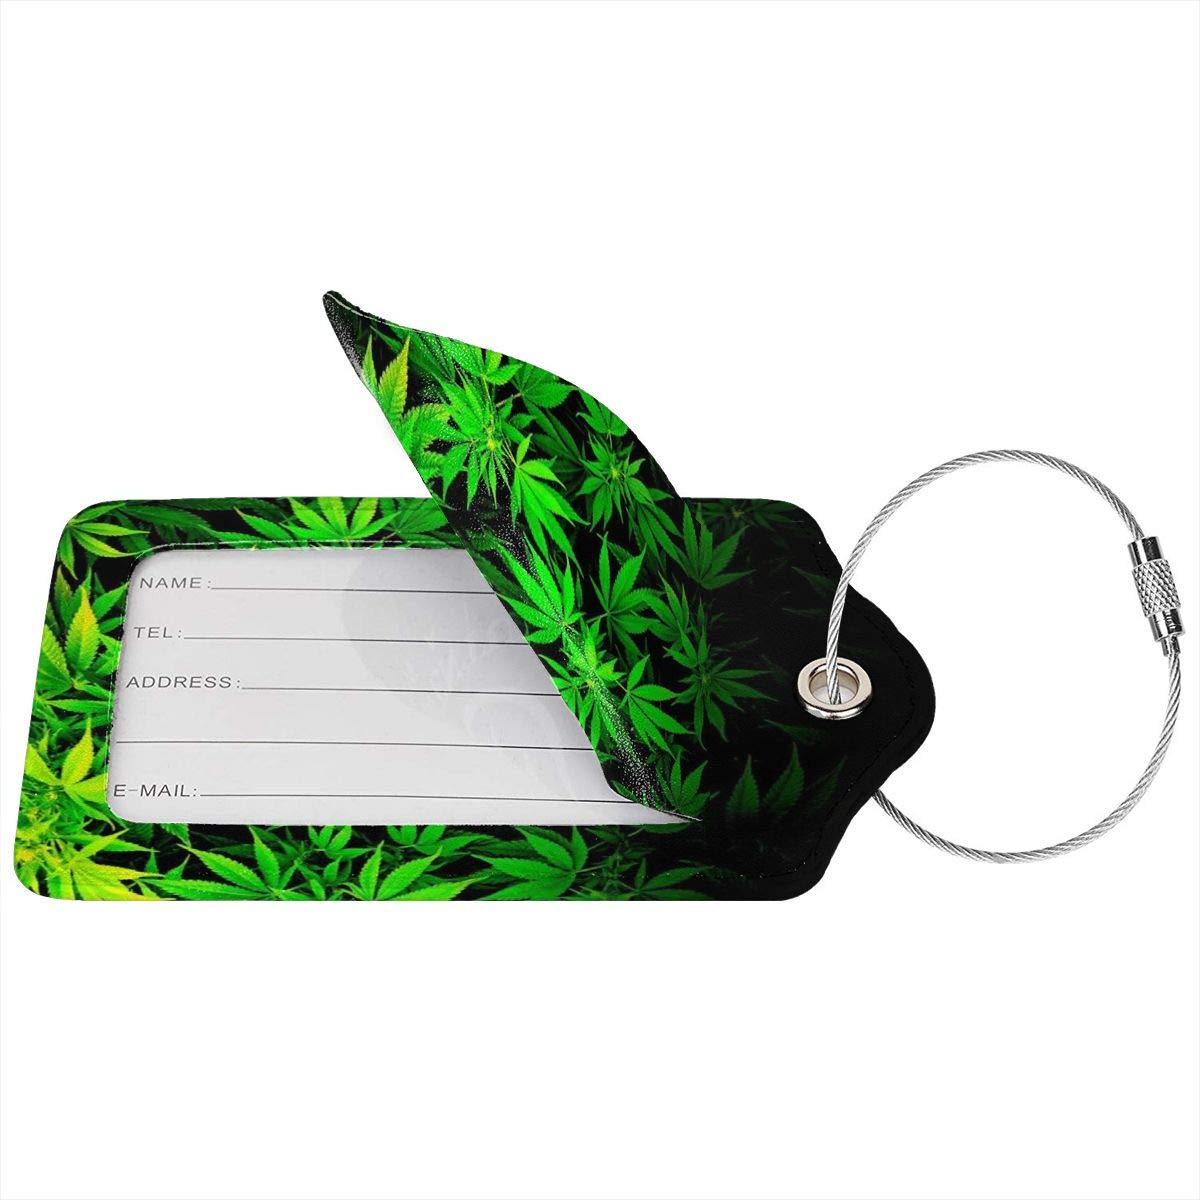 Cool Green Amazing Weed Leaves Luggage Tag Label Travel Bag Label With Privacy Cover Luggage Tag Leather Personalized Suitcase Tag Travel Accessories